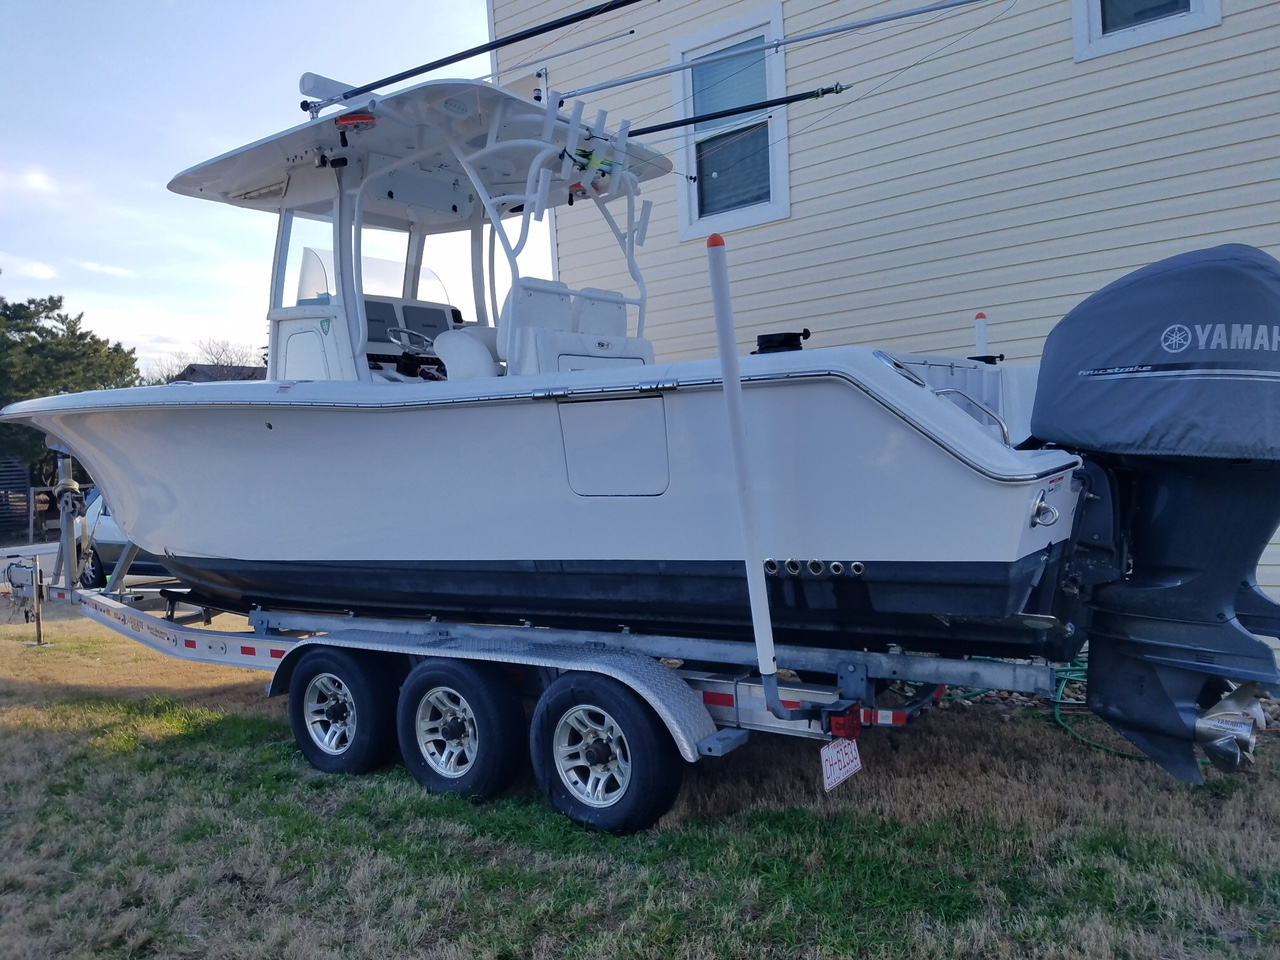 2014 Sea Hunt Gamefish 30 2014 Sea Hunt 30 Gamefish, port side, NOTE the Dive Door